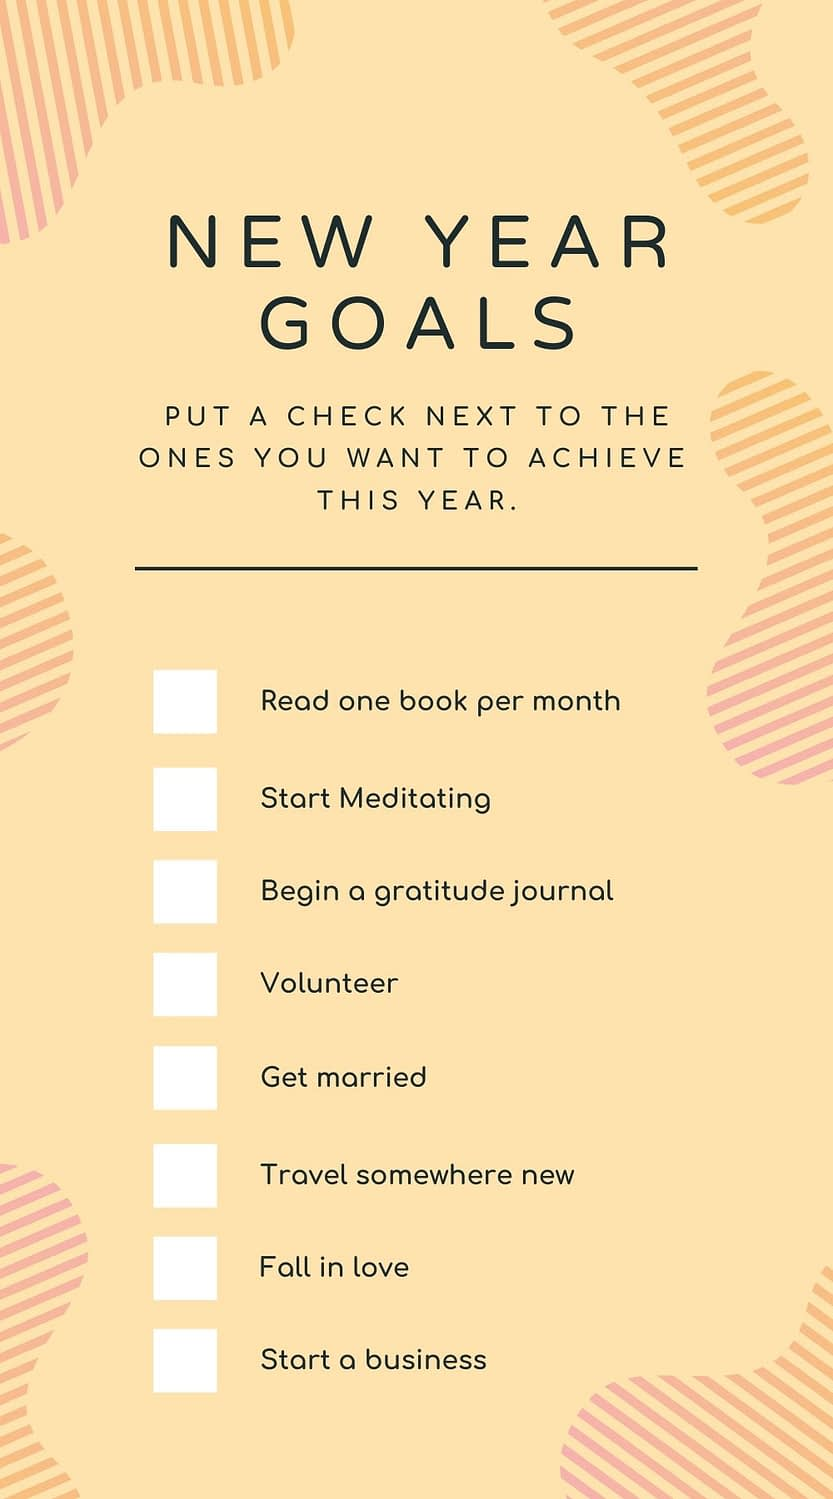 Canva is a great place to make creatives. I use Canva Pro so I can access pro images. Their library of checklist templates is fantastic.